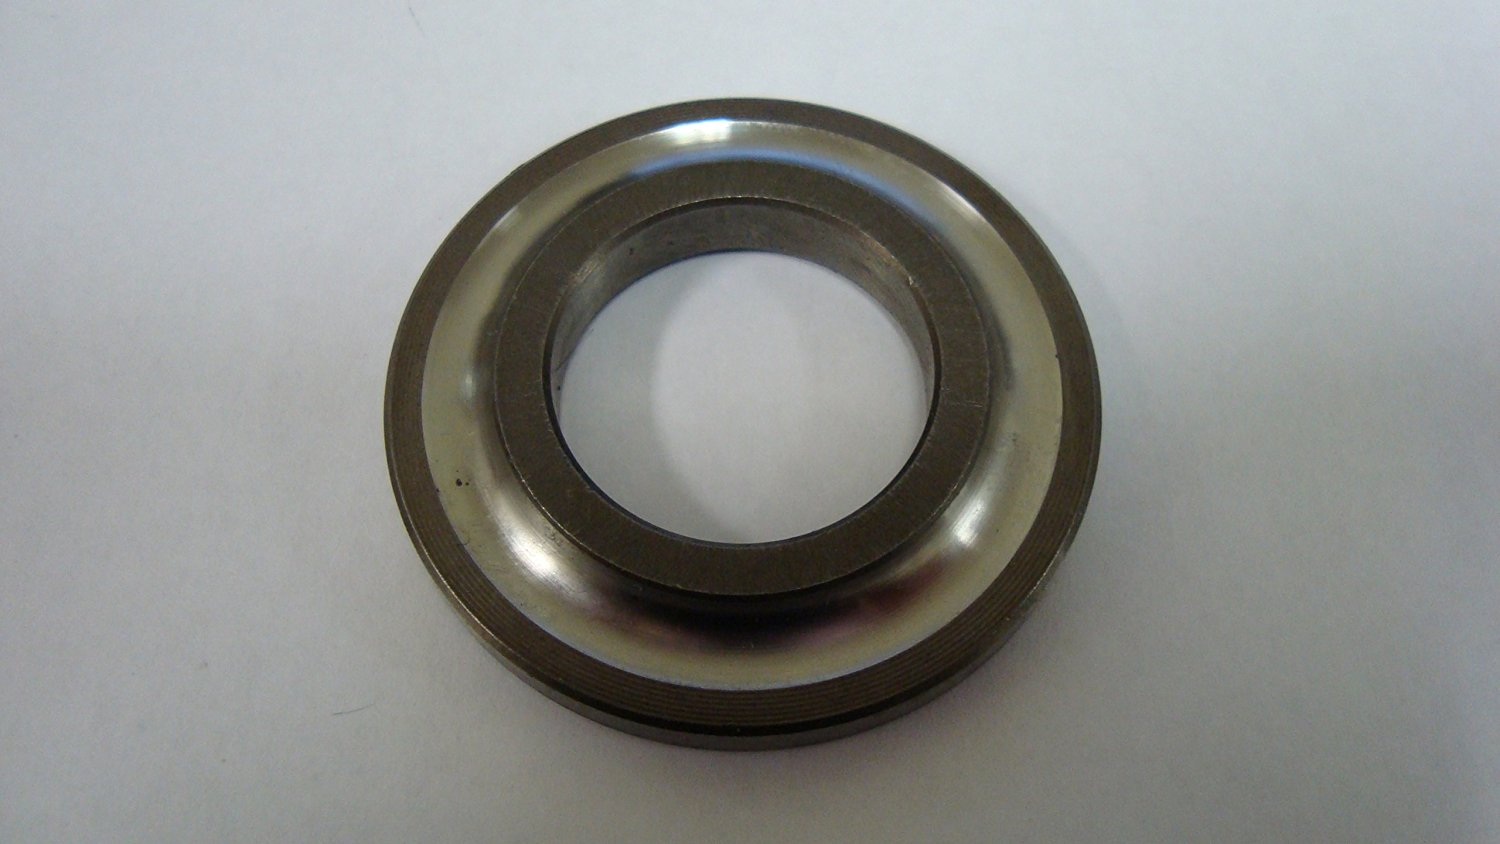 Yamaha Steering Ball #3 Race for TX500, TX650, TX750, XS500, XS650, XJ650, XV750, XV920, FZ600, SRX600 Part # 256-23413-00